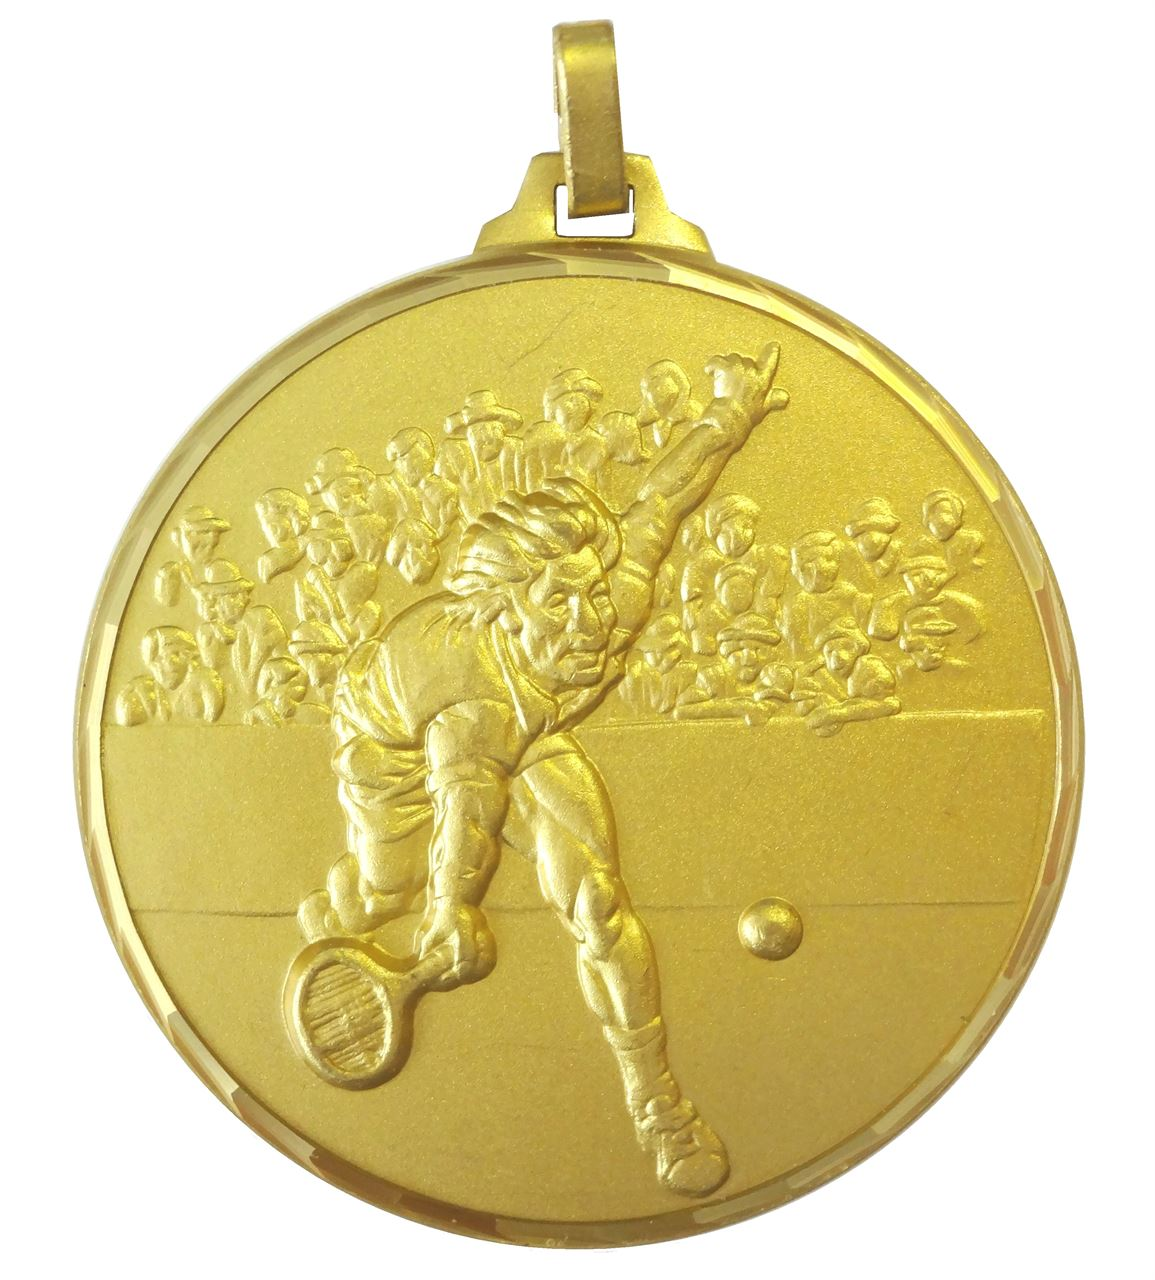 Gold Faceted Male Tennis Player Medal (size: 52mm) - 321/52G